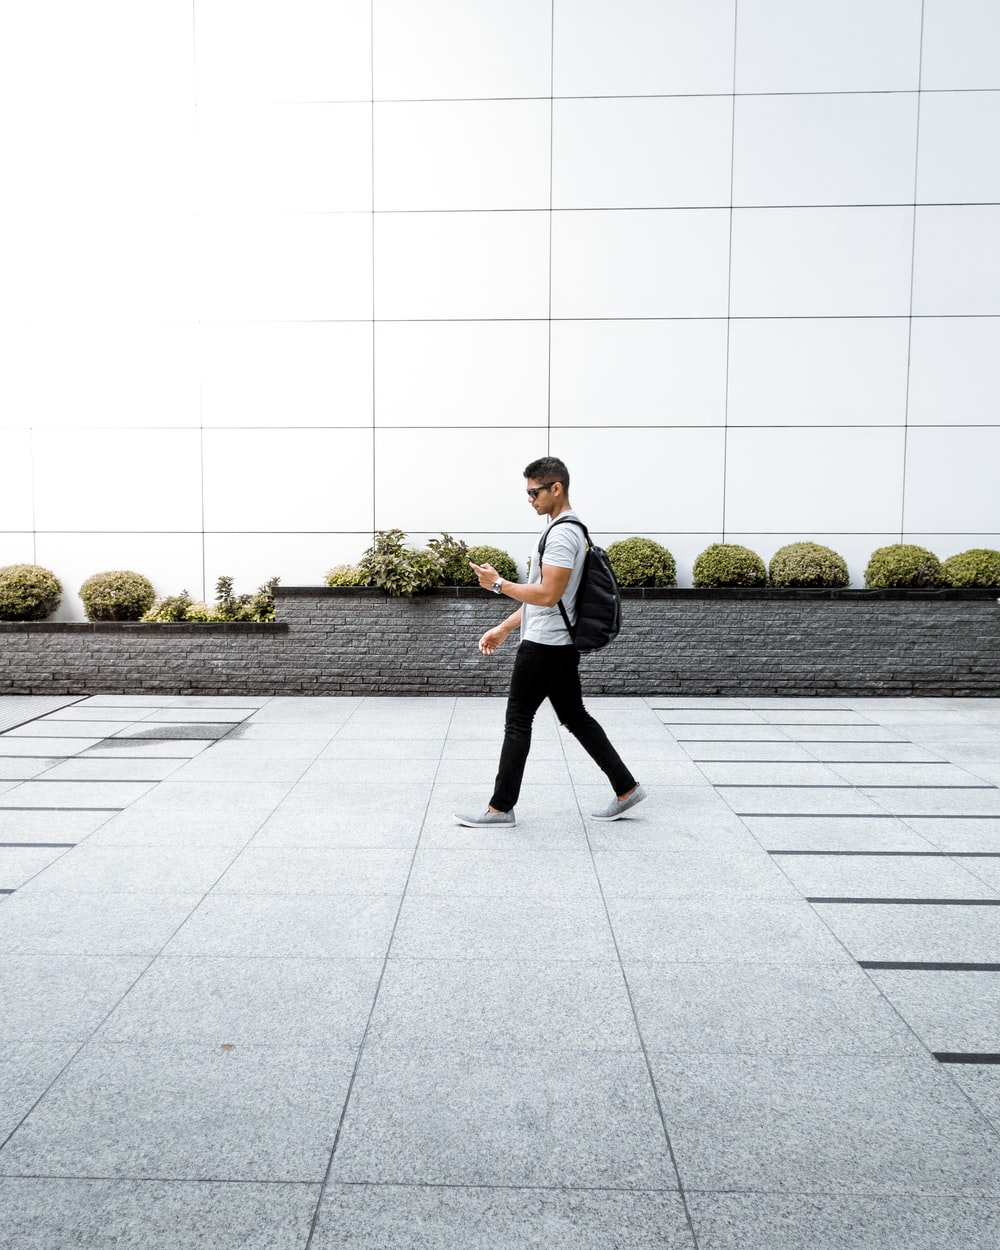 man with backpack using phone walking alone on pathway